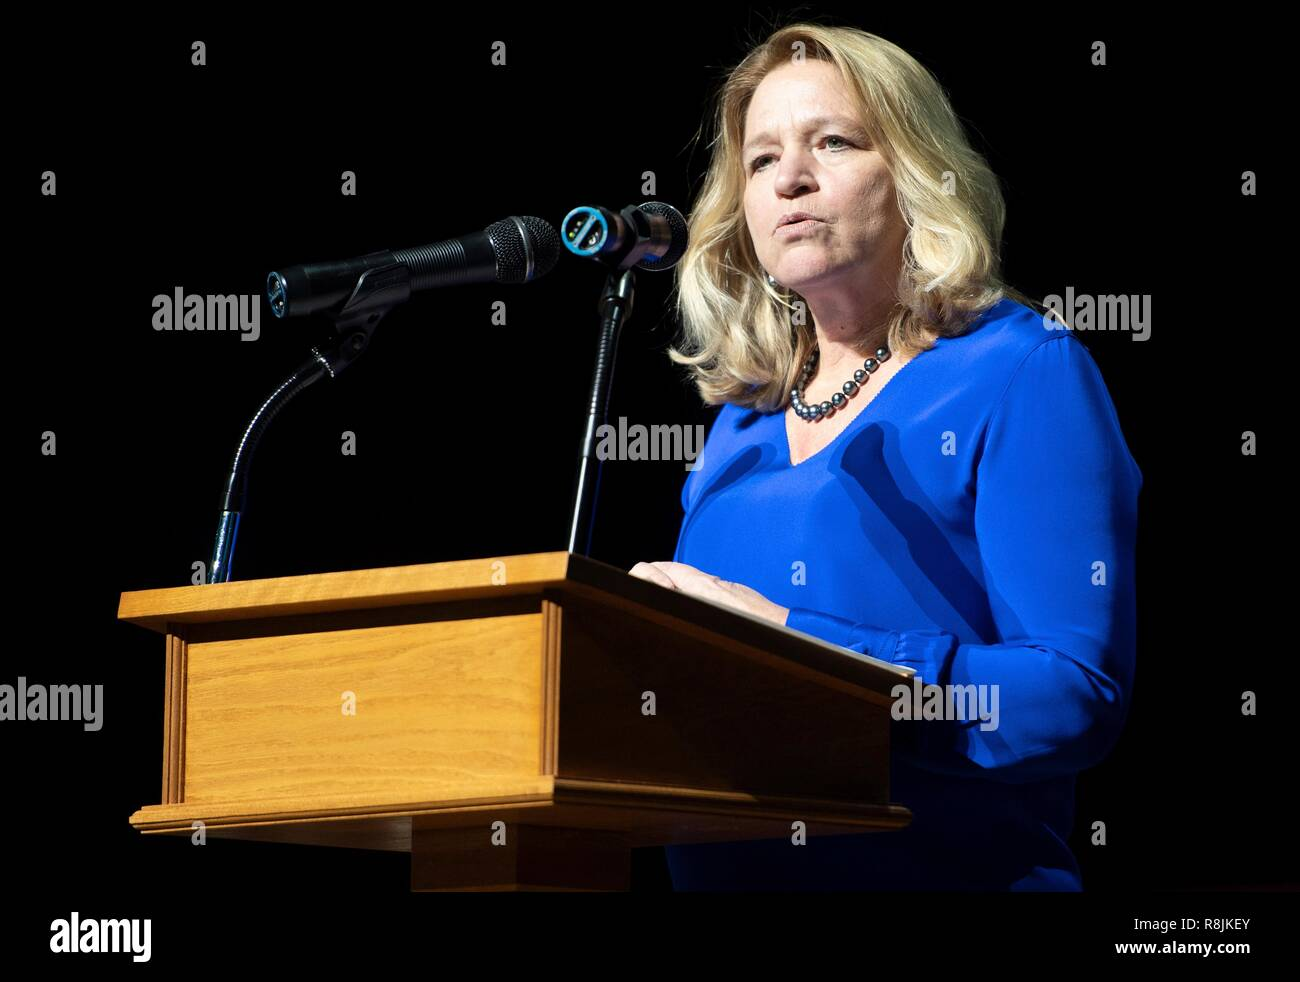 Ellen Stofan, director of the Smithsonian National Air and Space Museum, speaks about the Apollo program during the Spirit of Apollo event commemorating the 50th anniversary of Apollo 8 at the National Cathedral December 11, 2018 in Washington, DC. Apollo 8 was the first manned spaceflight to the Moon and back carrying astronauts Frank Borman, Jim Lovell, and William Anders in December of 1968. - Stock Image